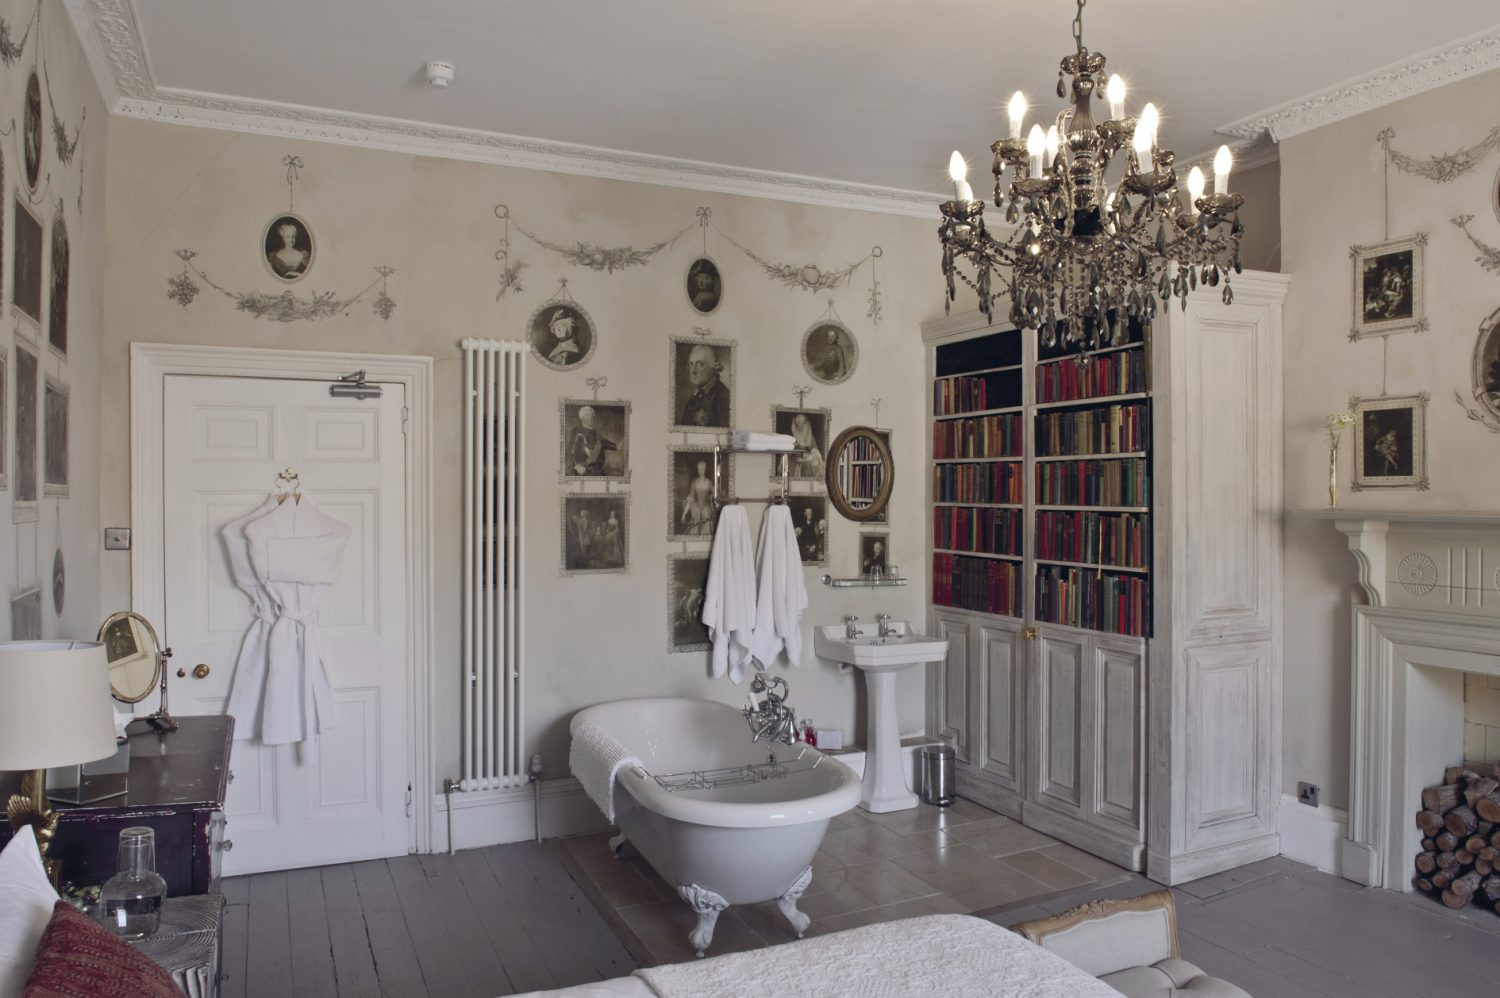 The Old Rectory's Grade II listed status and English Heritage regulations made installing a new bathroom a real challange. To create an en suite for the Crown Room, Lionel fitted the bath in the middle of the room and then cleverly concealed the basin and loo behind a purpose-made bookcase to avoid breaking the cornices up